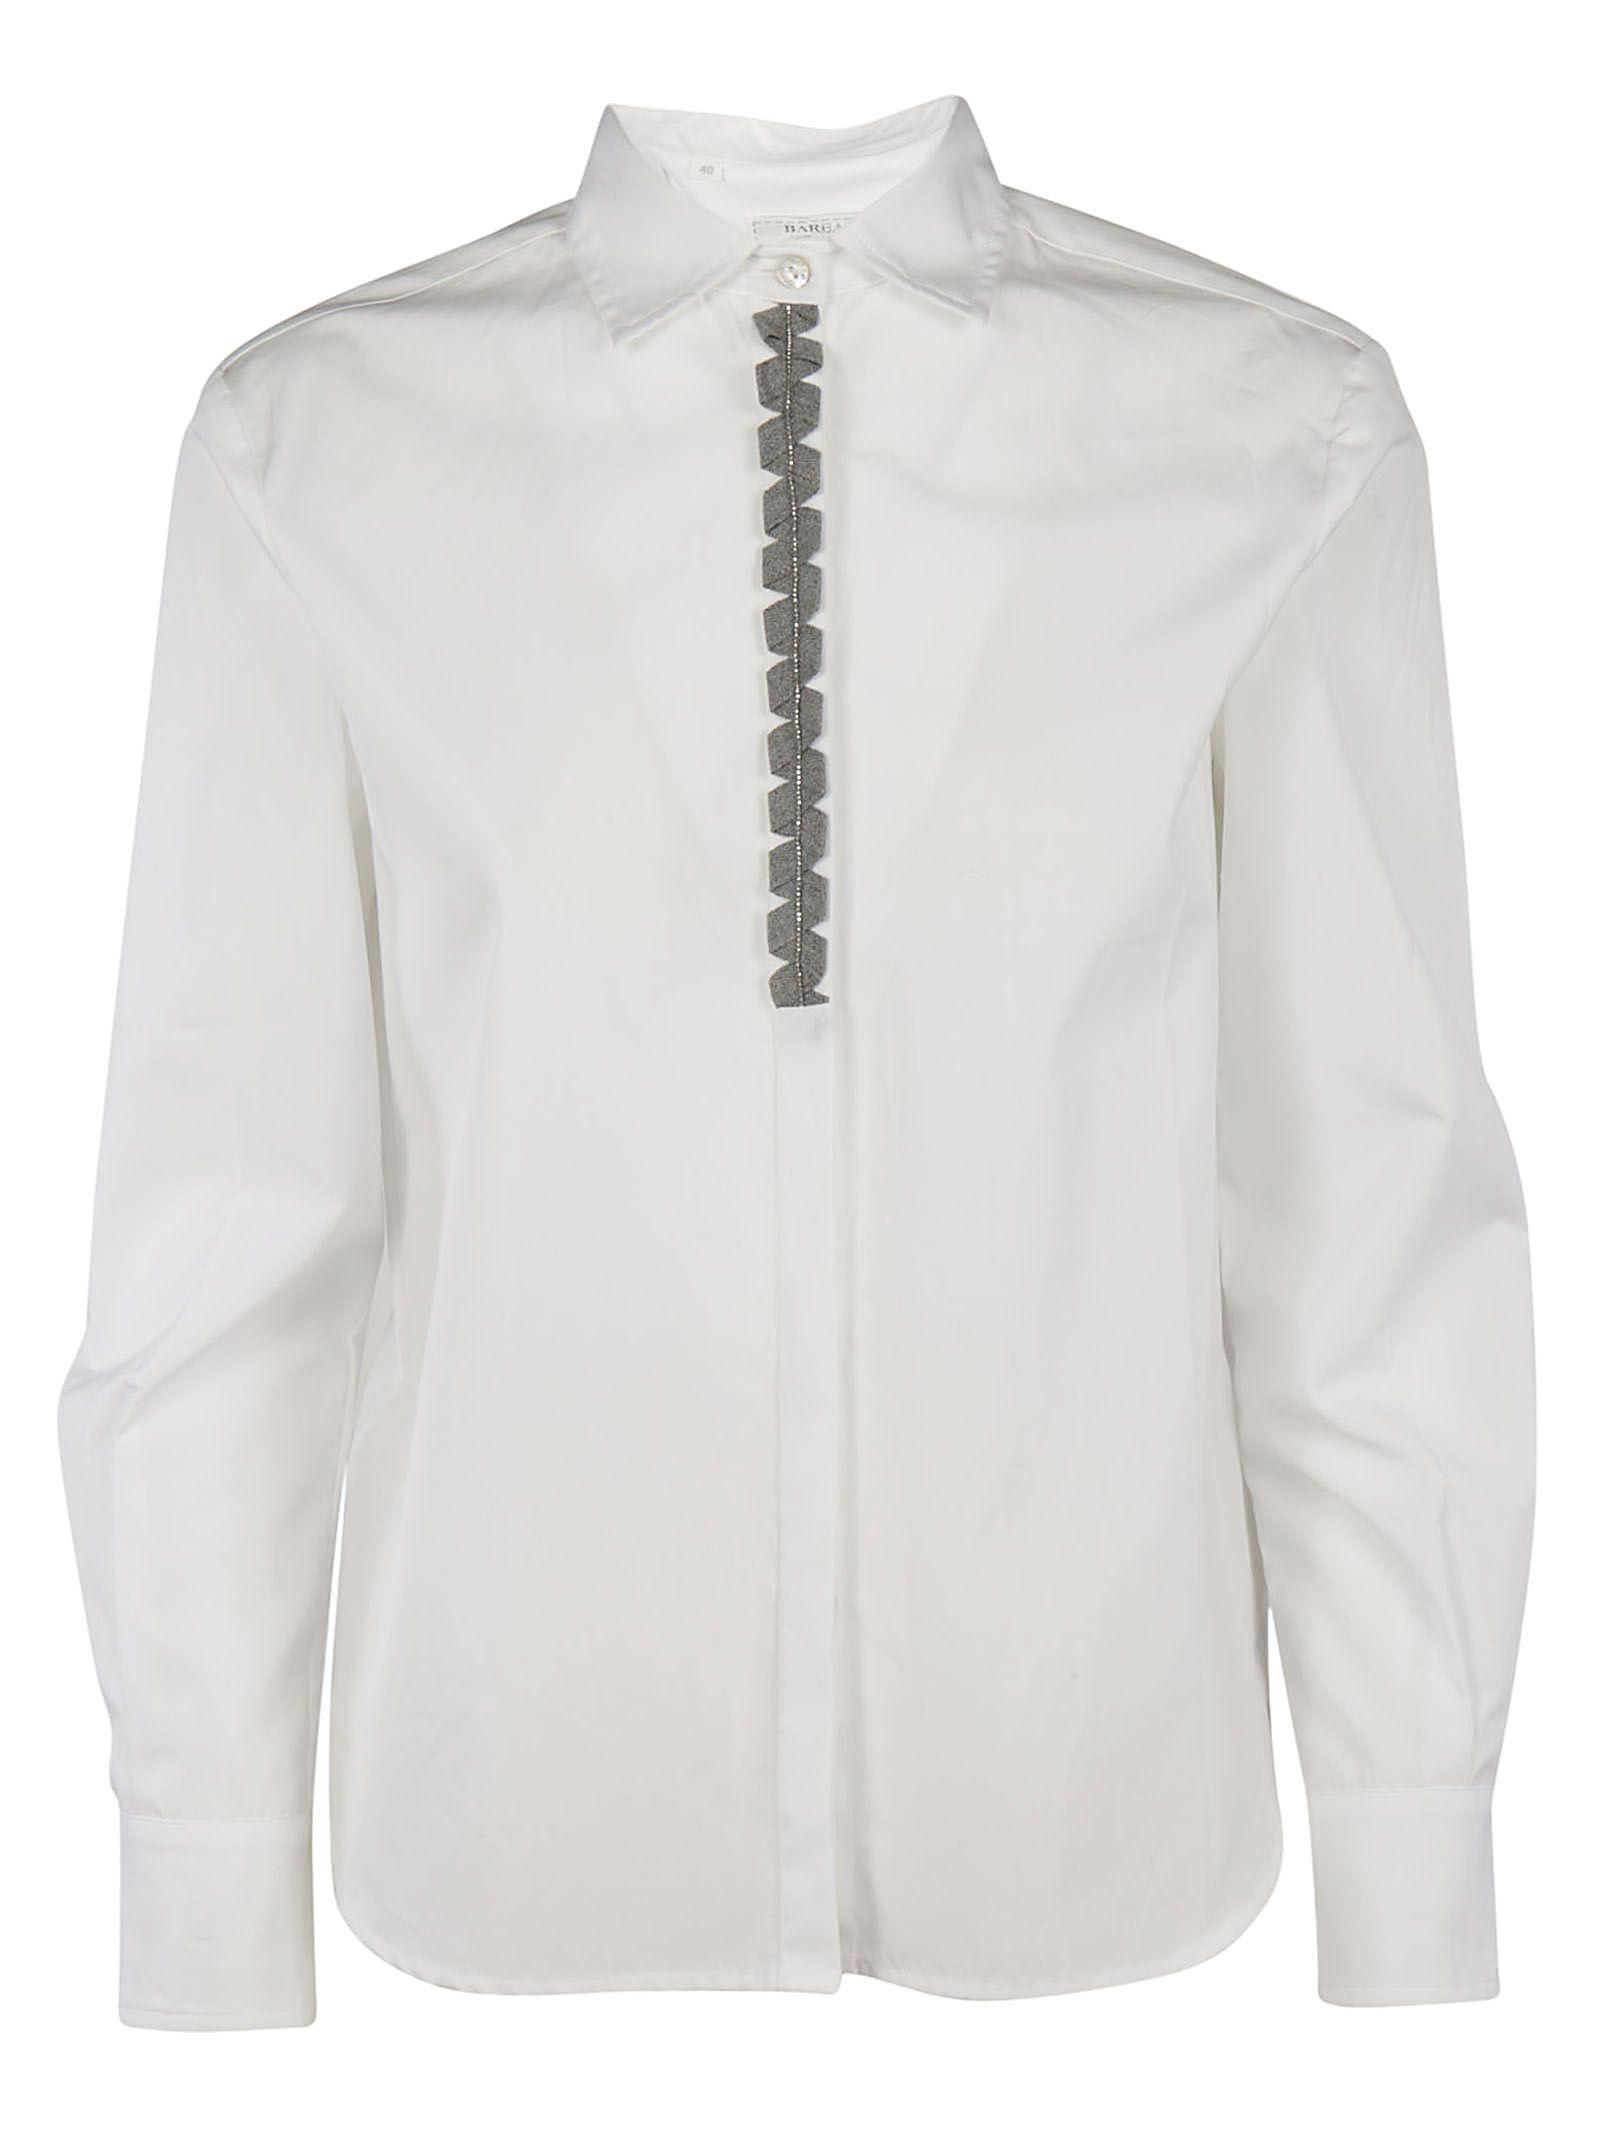 Barba Embellished Front Shirt In White